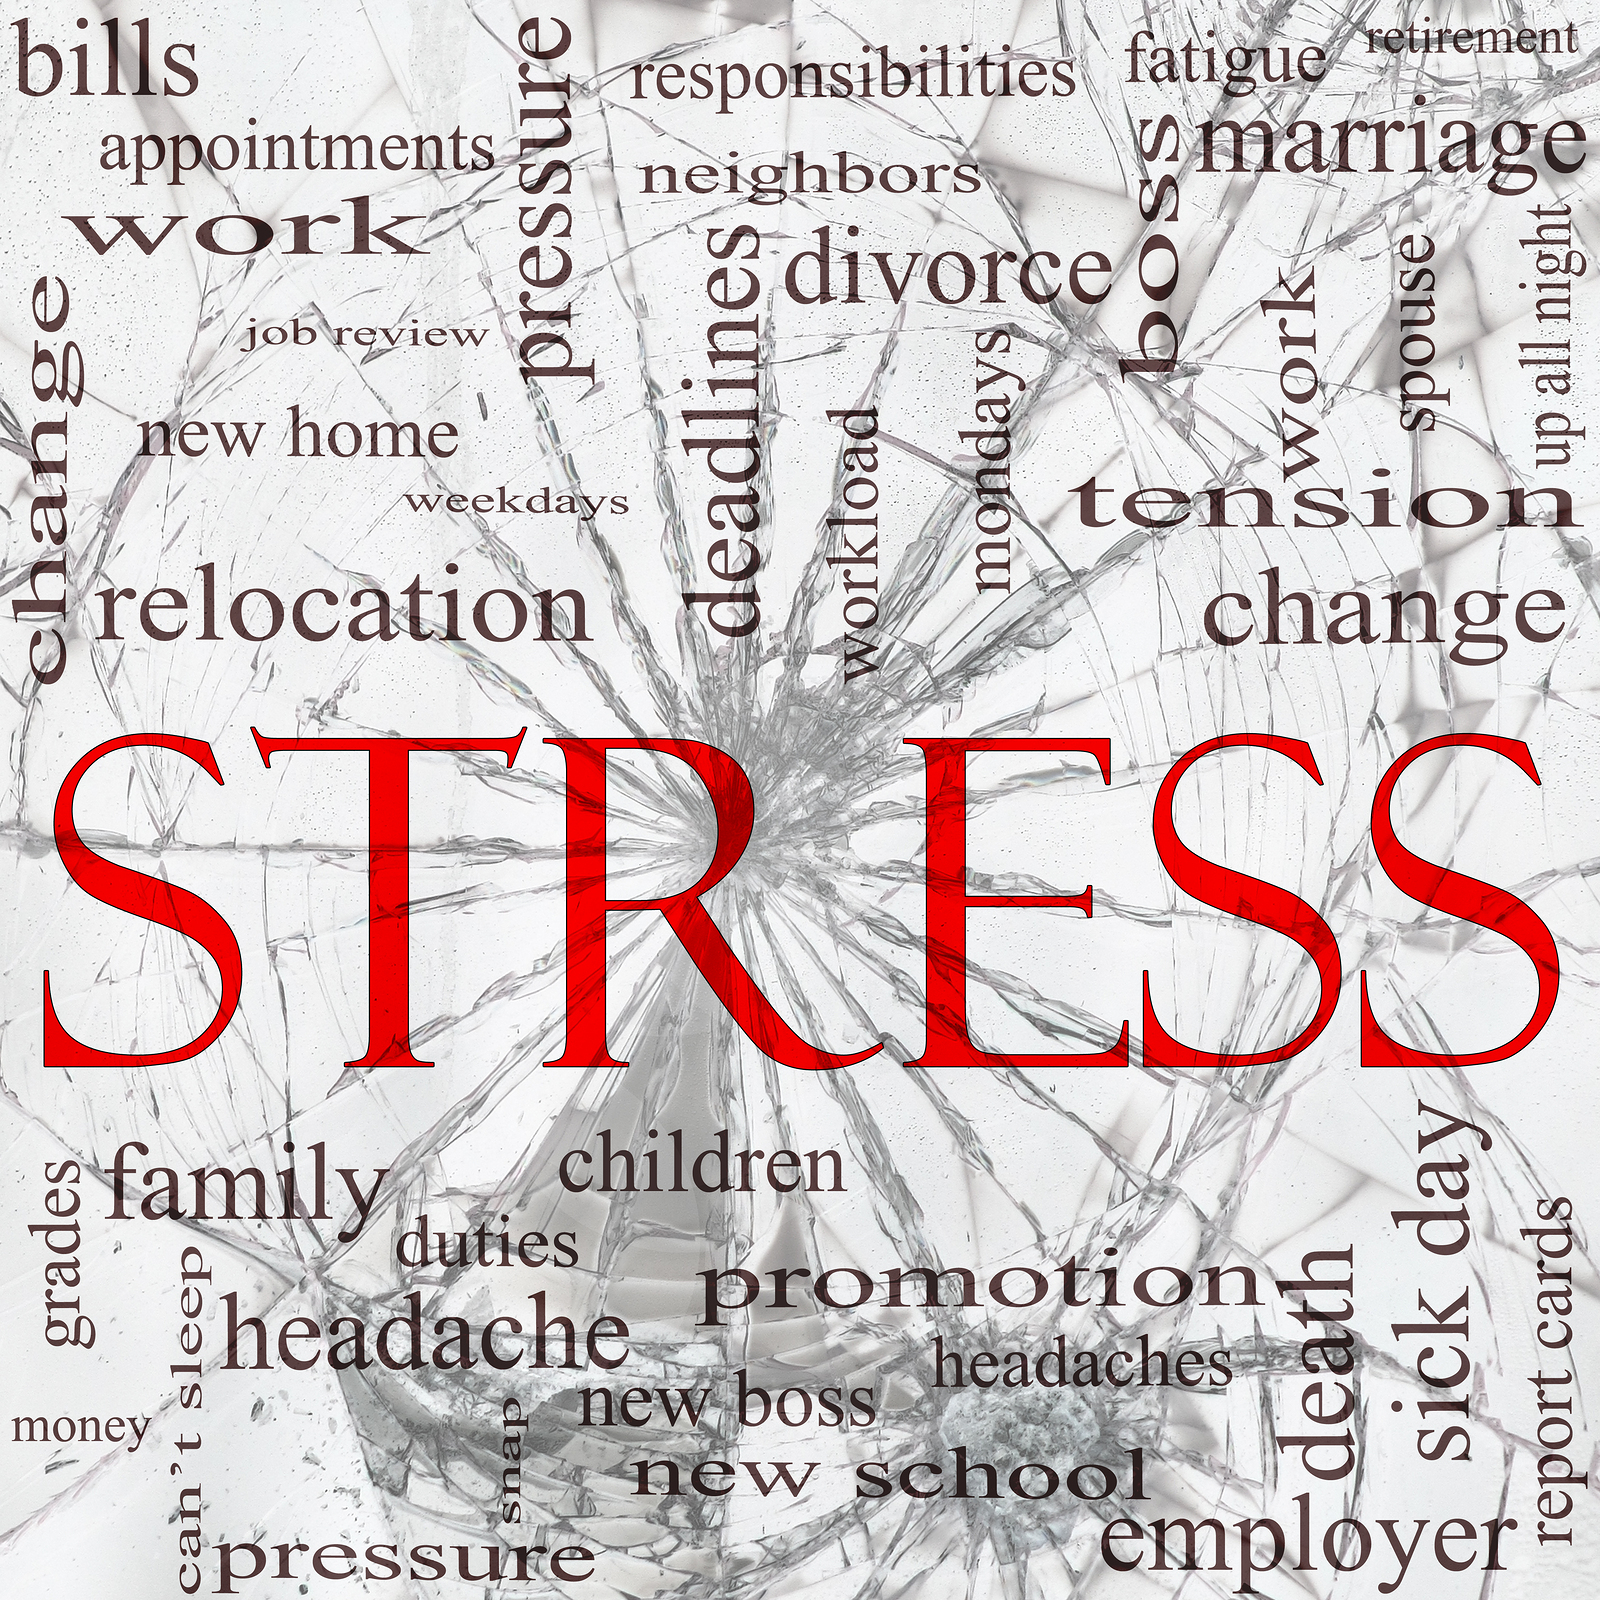 bigstock-Stress-Shattered-Glass-Word-Cl-28761998.jpg